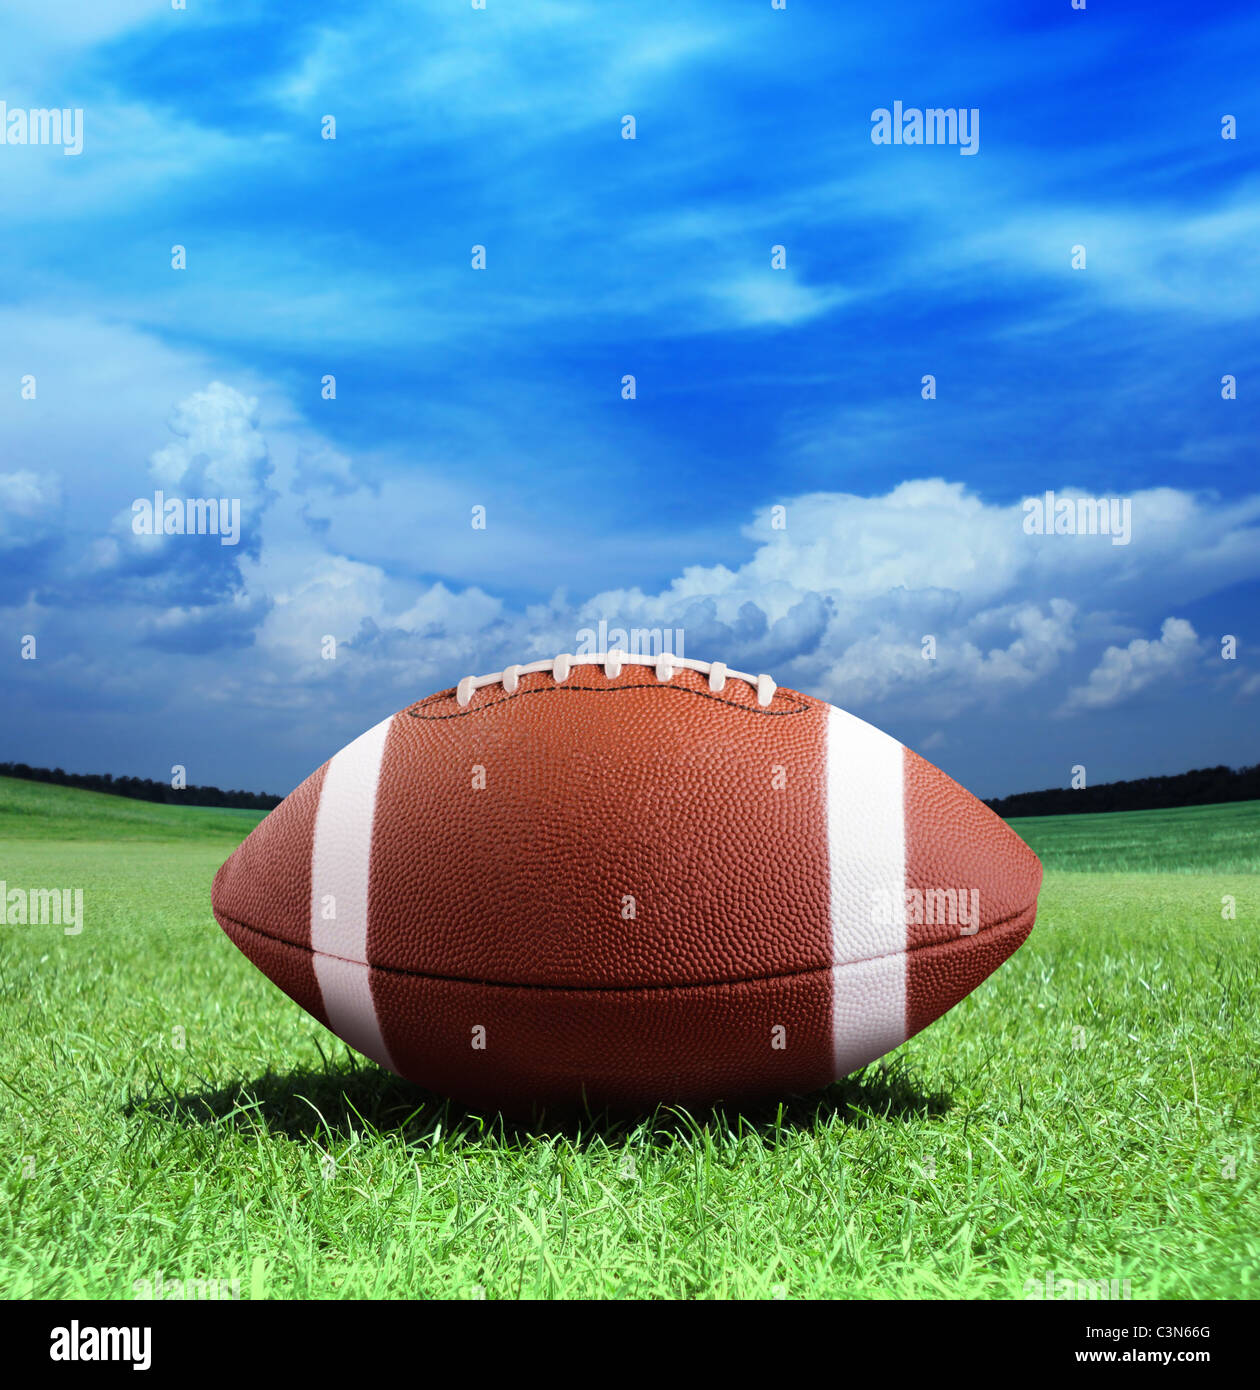 football on arena near the 50 yard line - Stock Image